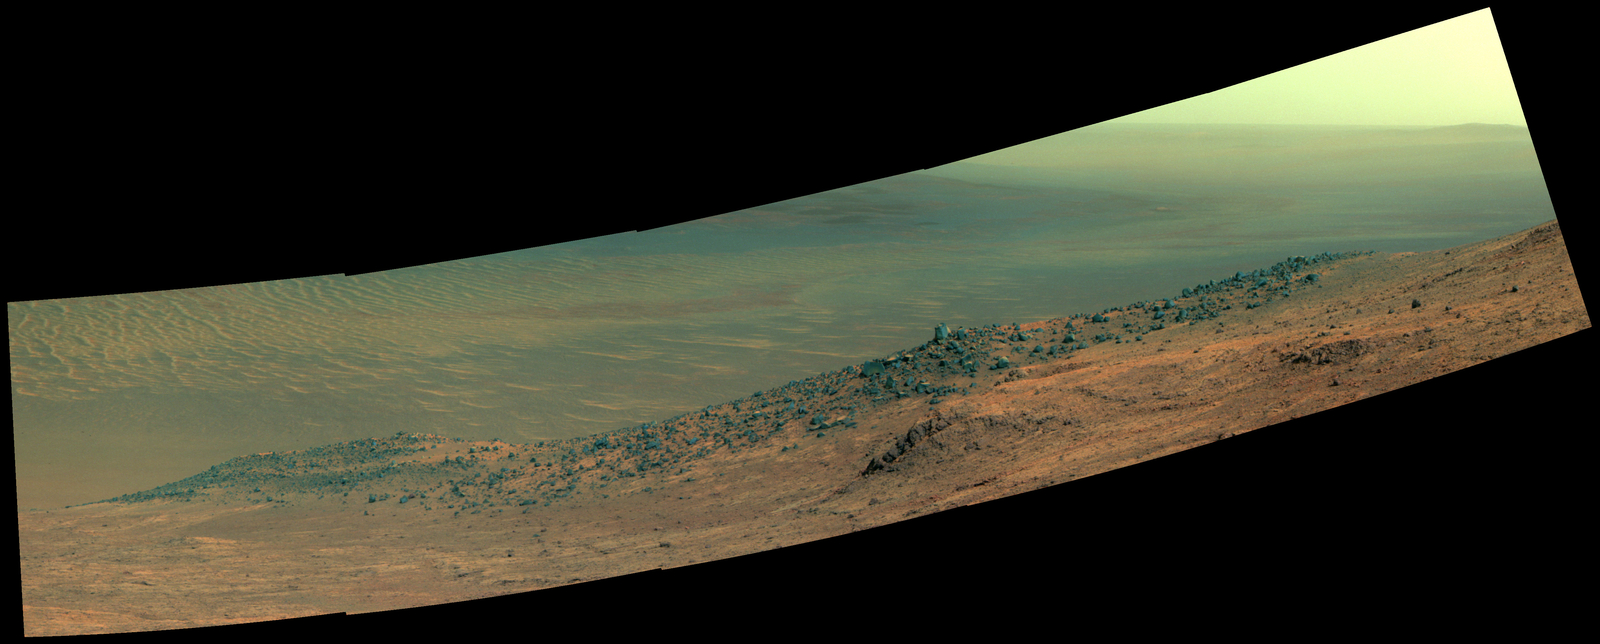 "This scene from NASA's Mars rover Opportunity shows ""Wharton Ridge,"" on the western rim of Endeavour Crater. The ridge's name honors the memory of astrobiologist Robert A. Wharton (1951-2012). The scene is presented in enhanced color to make differences in surface materials more easily visible."